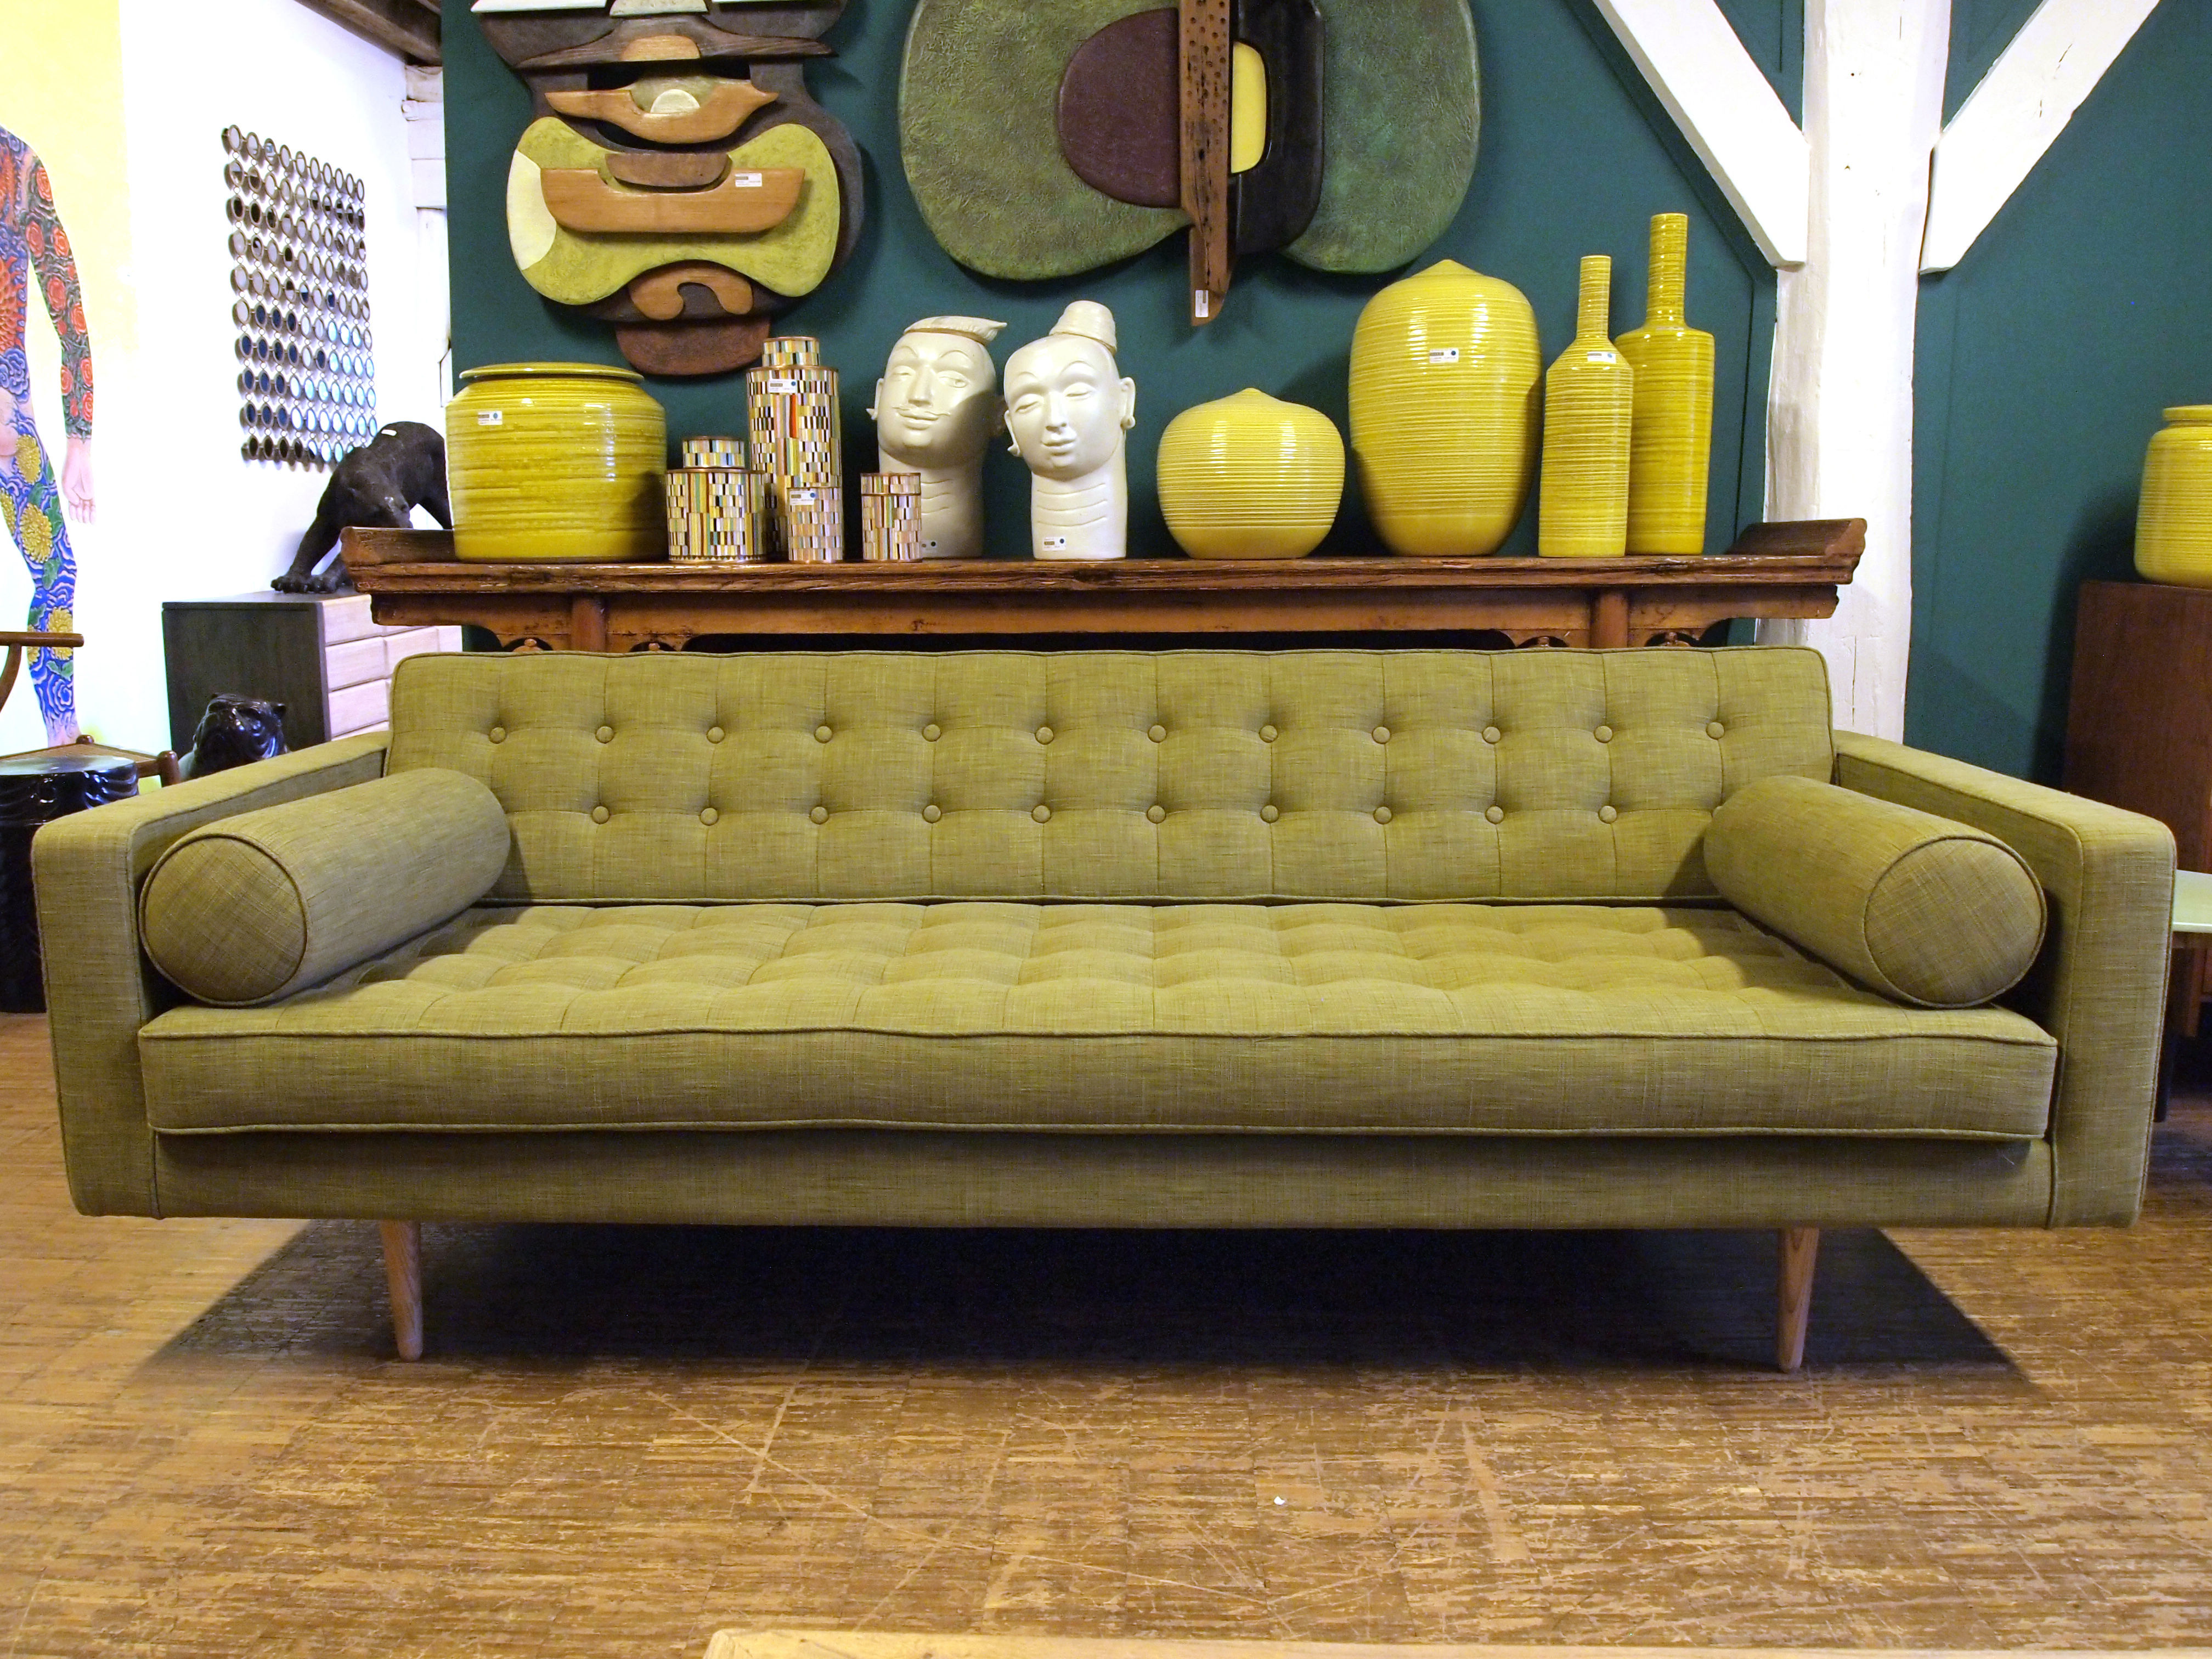 Canap droit 3 places l 215 cm vert olive made in - Canape vert olive ...